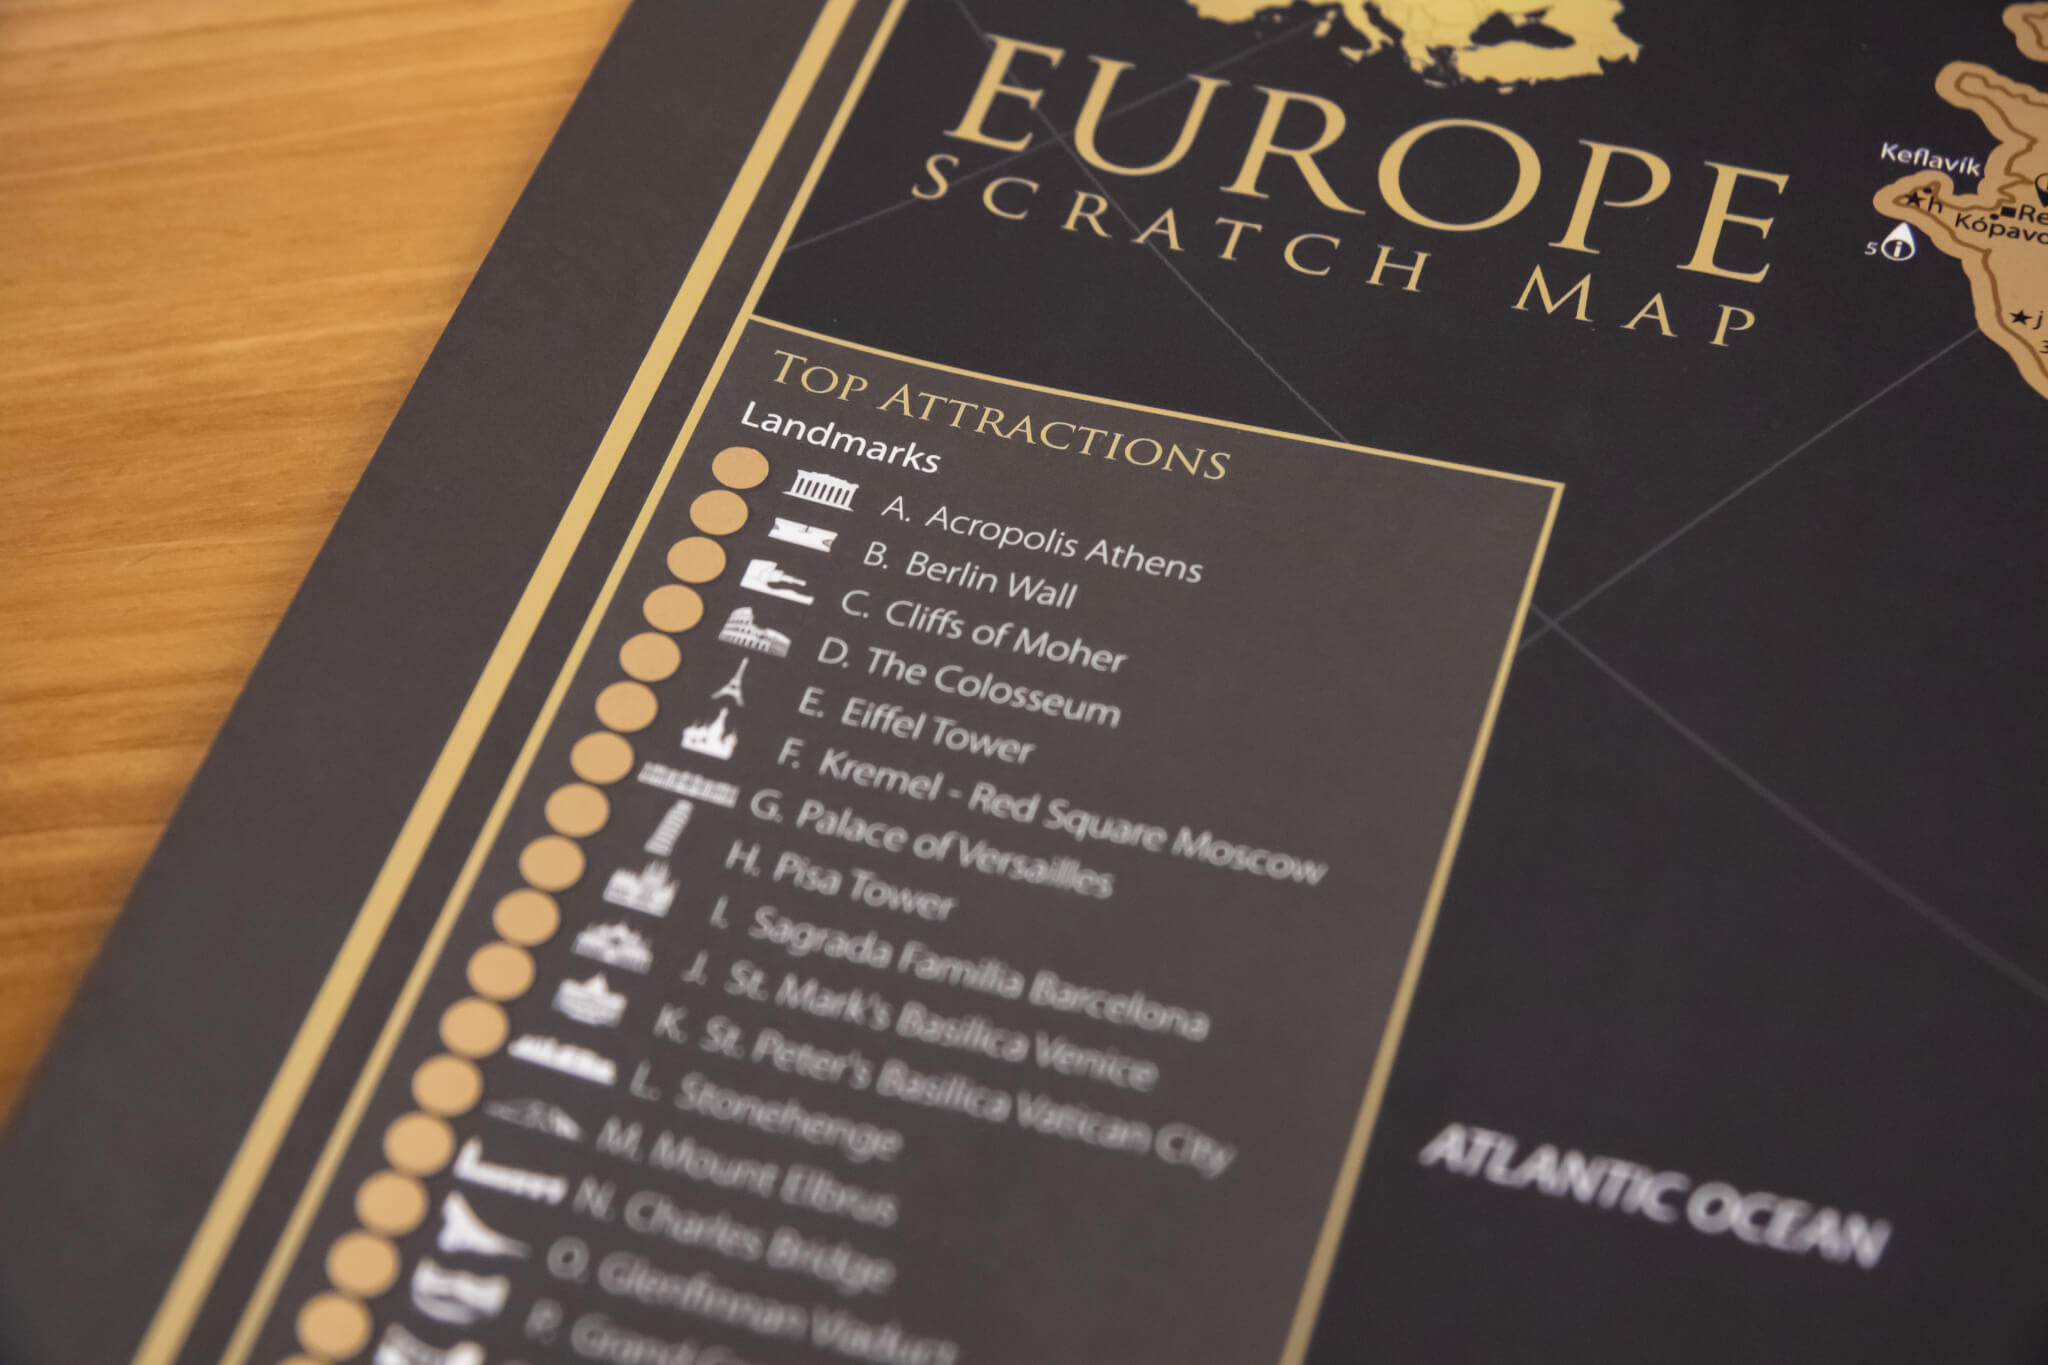 Scratch Map of Europe - Detail of Top Attractions